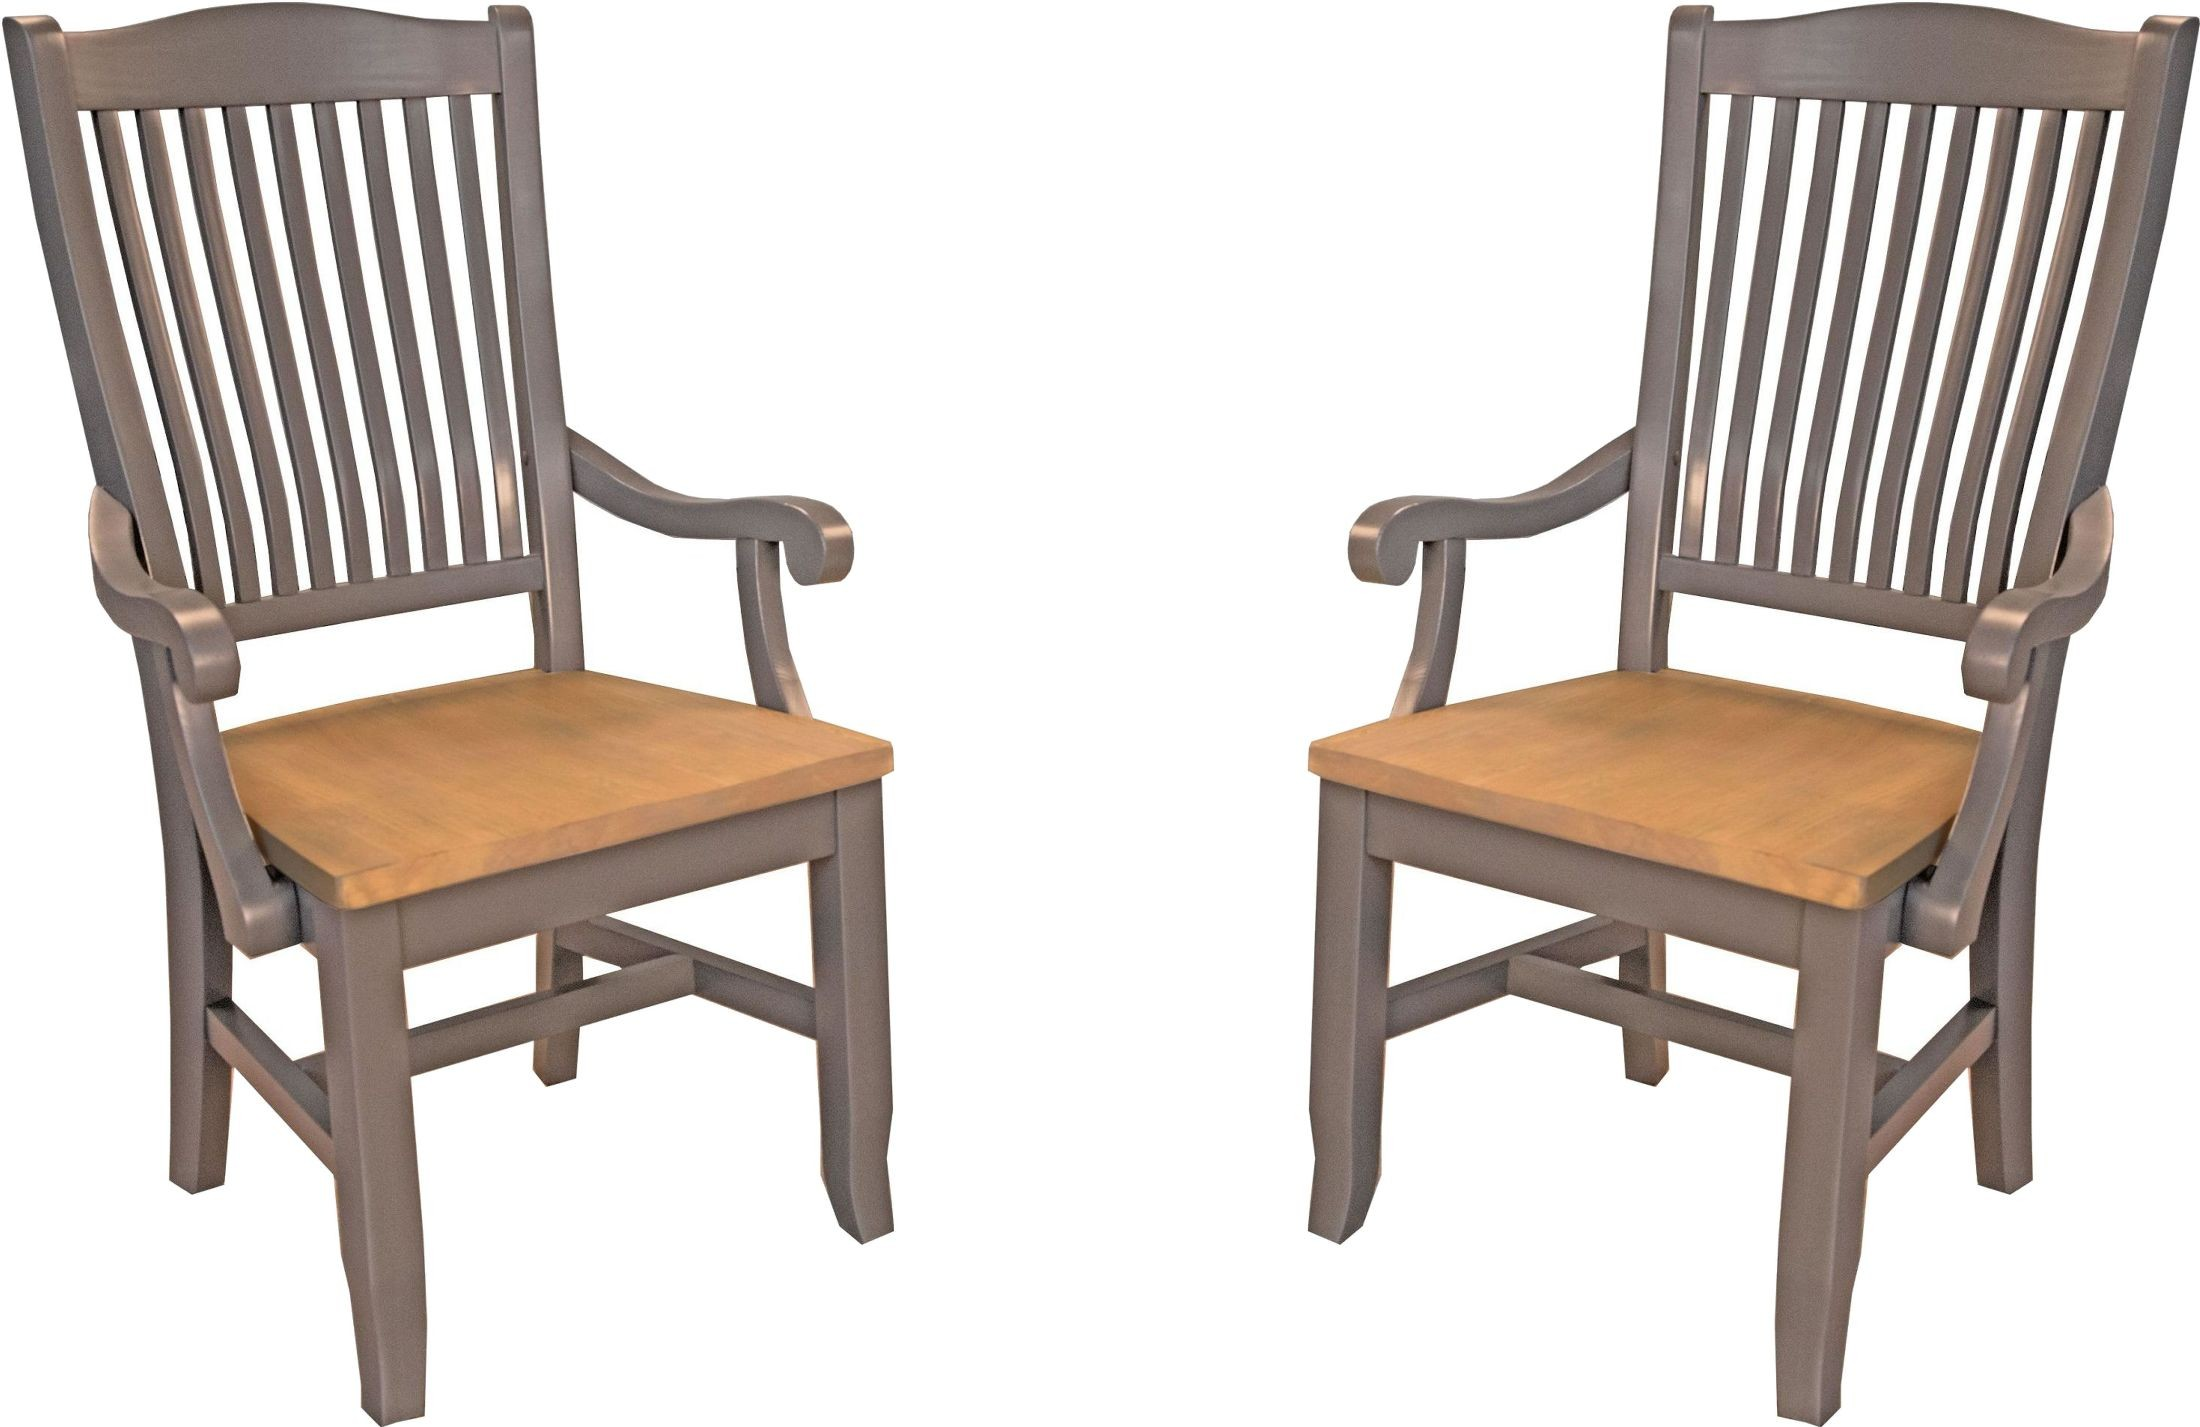 wooden slat chairs mid century modern dining port townsend grey and seaside pine wood back arm